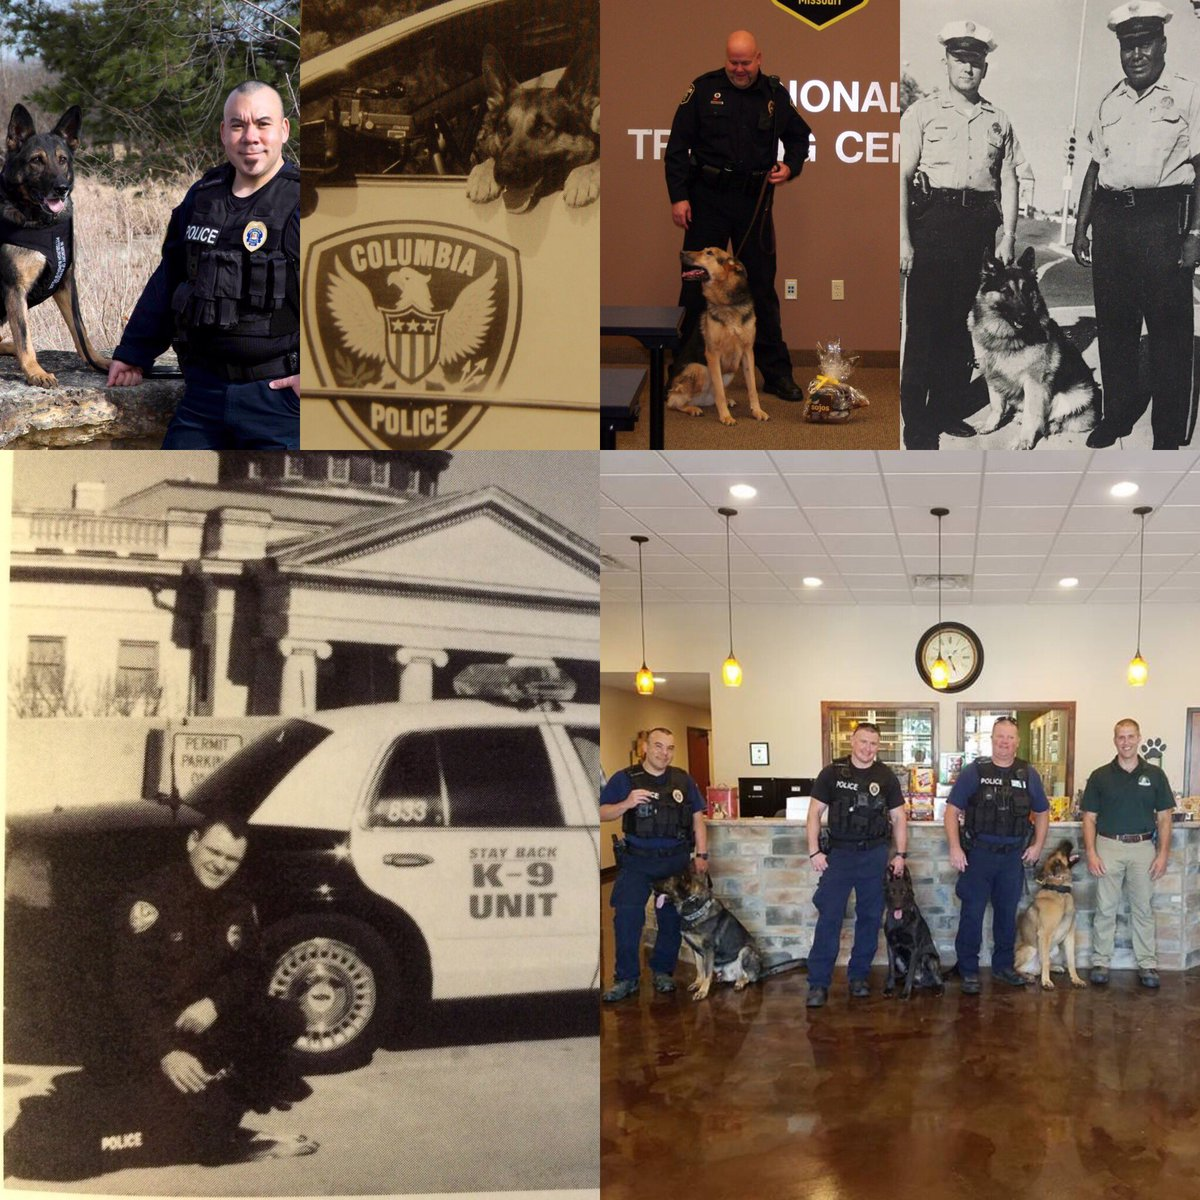 ColumbiaPD (@ColumbiaPD) | Twitter